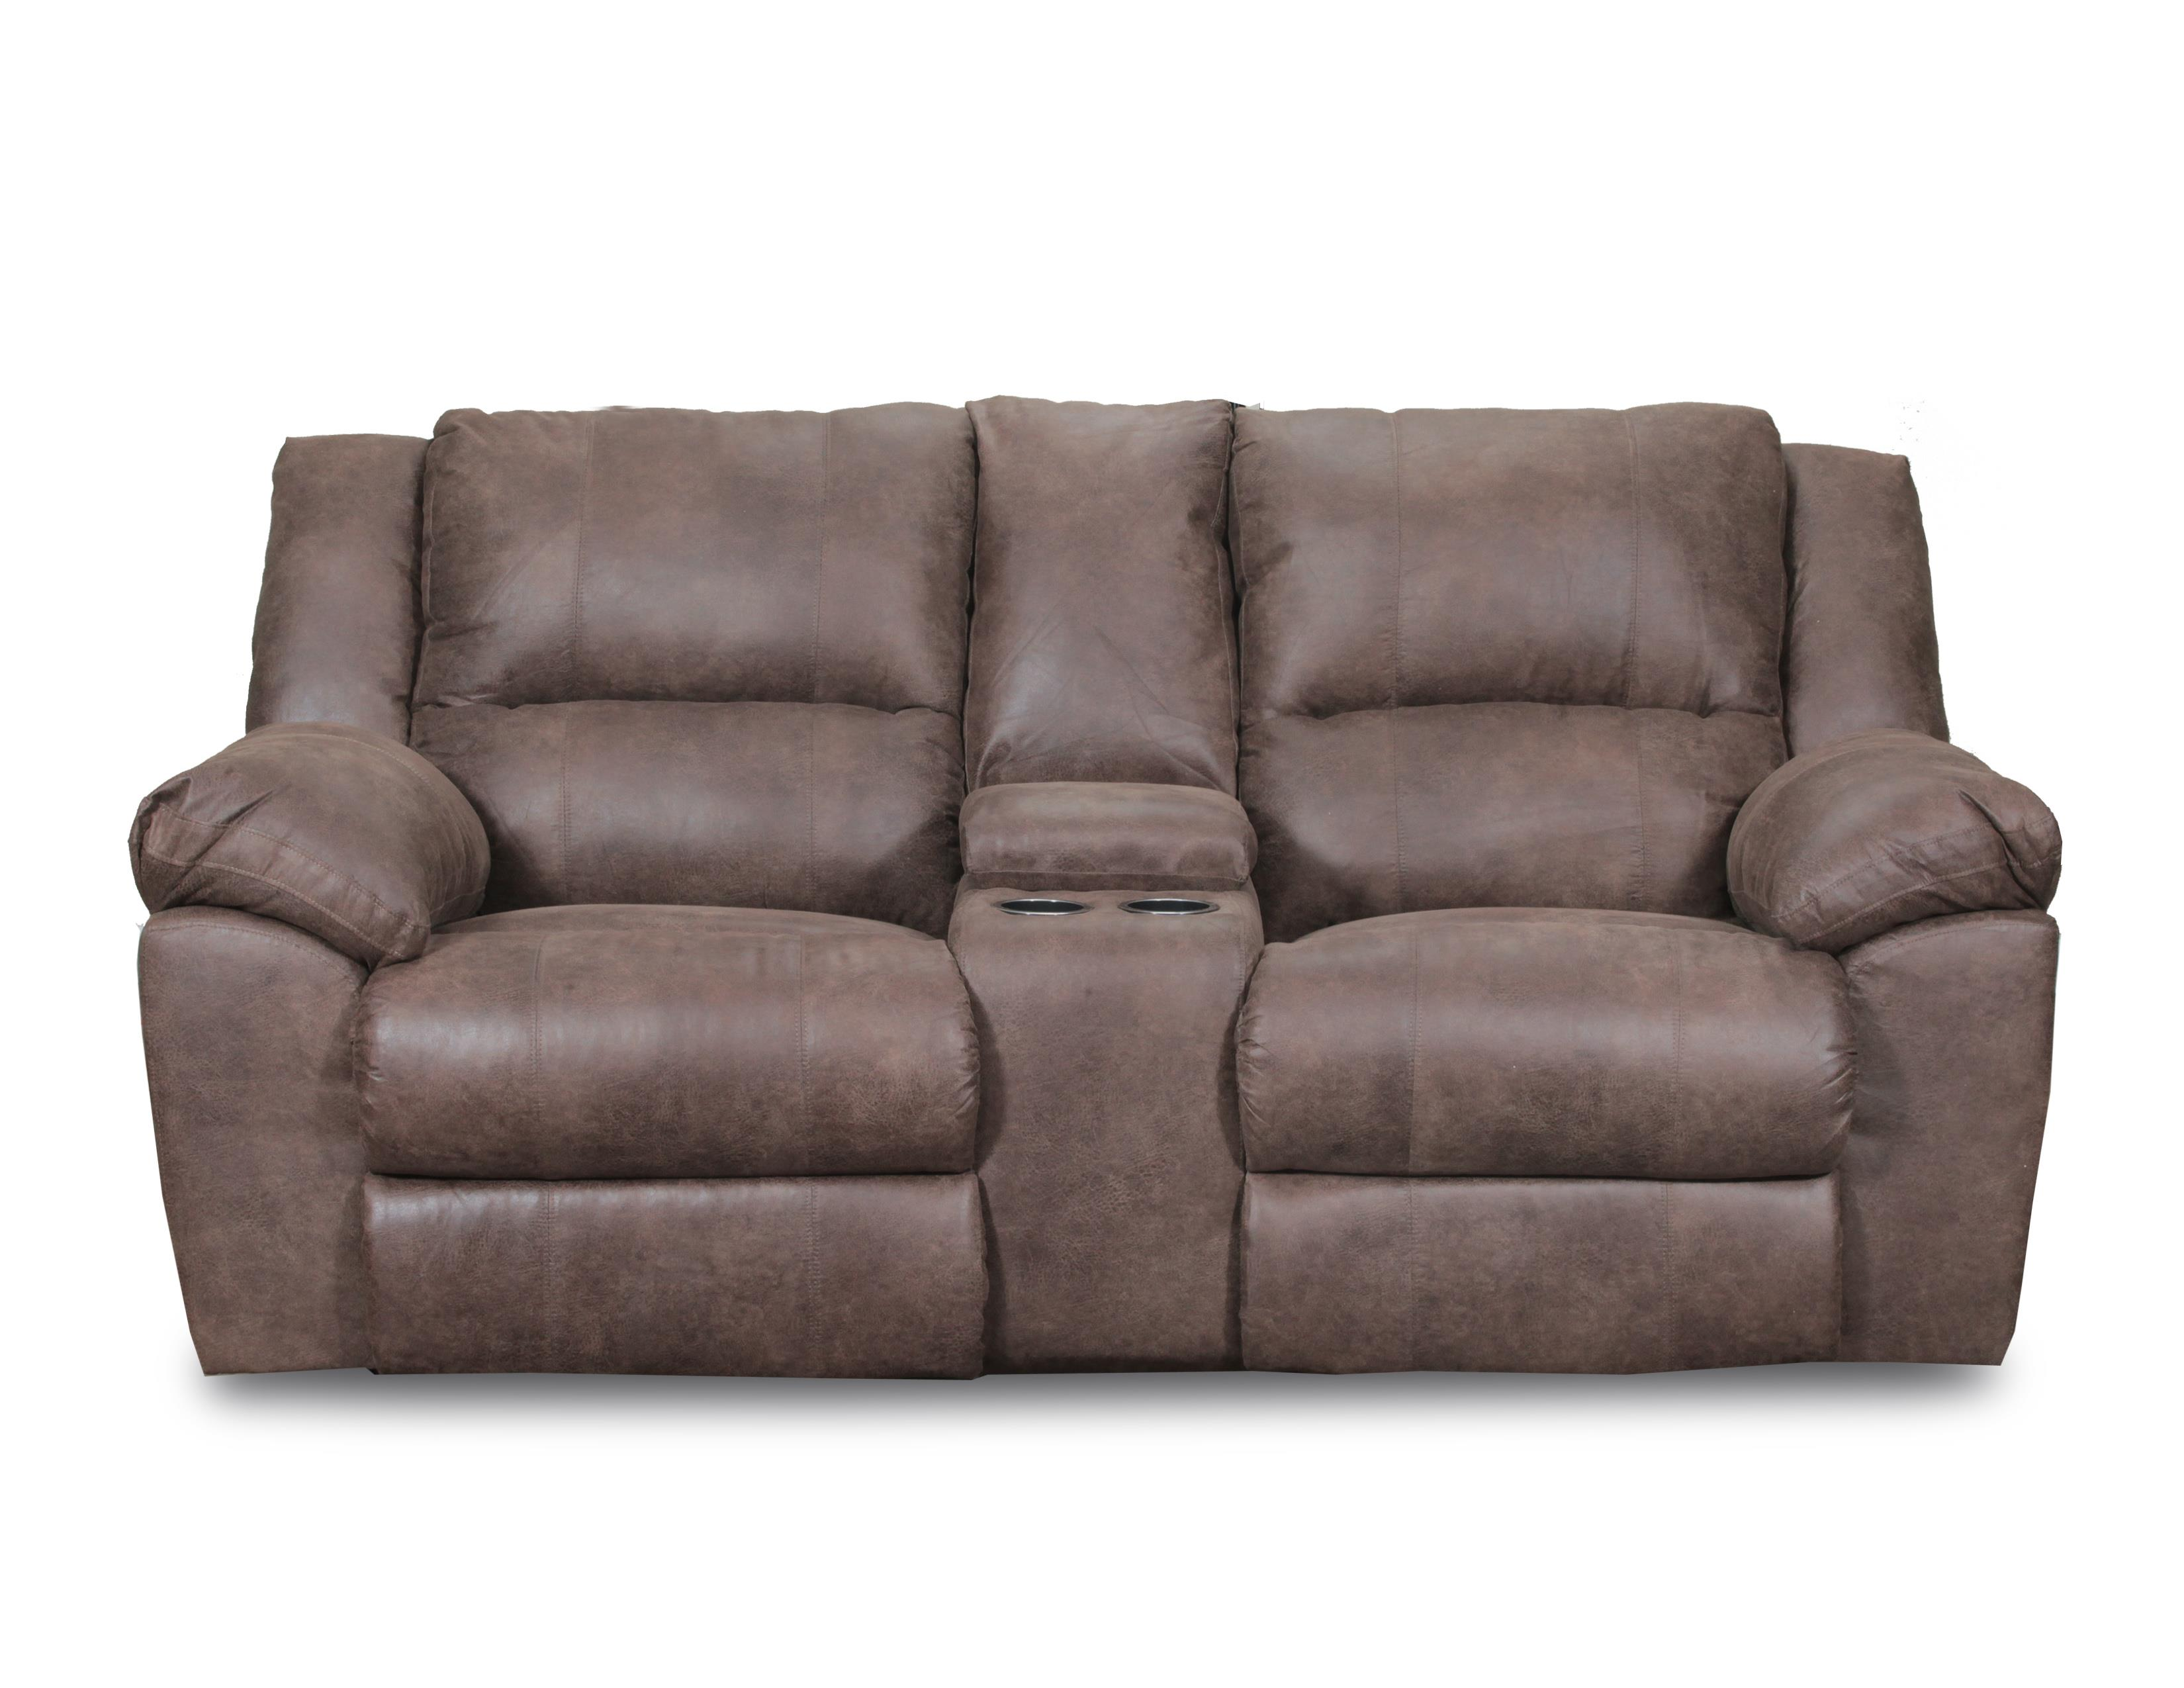 Simmons Upholstery 50111 Casual Double Motion Loveseat